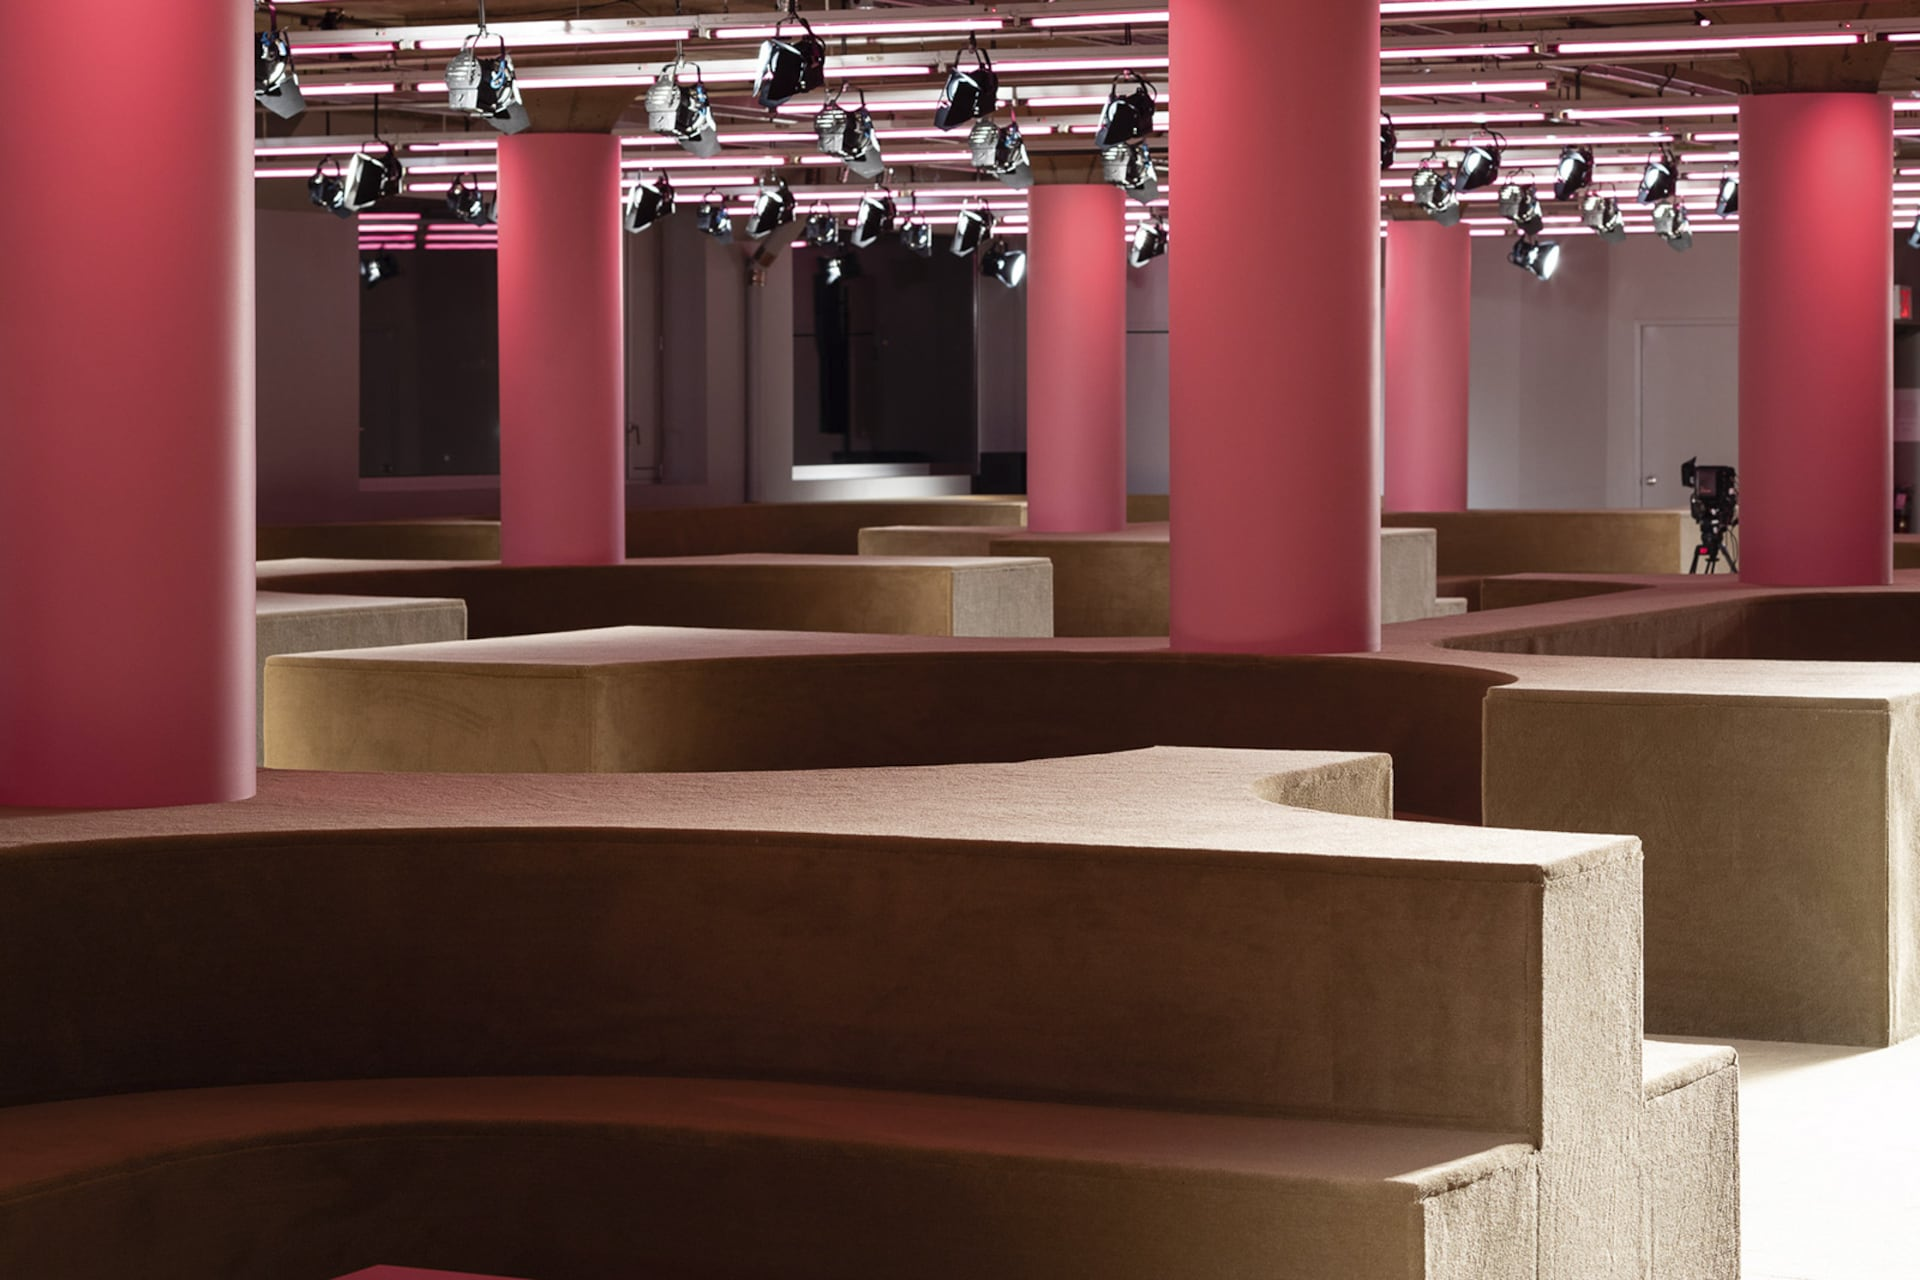 Prada Resort 2020 fashion show space 8. For the Prada 2020 Resort Show, AMO takes over the Piano Factory, Prada US's headquarters, and reinterprets it as an intimate setting for social gathering.